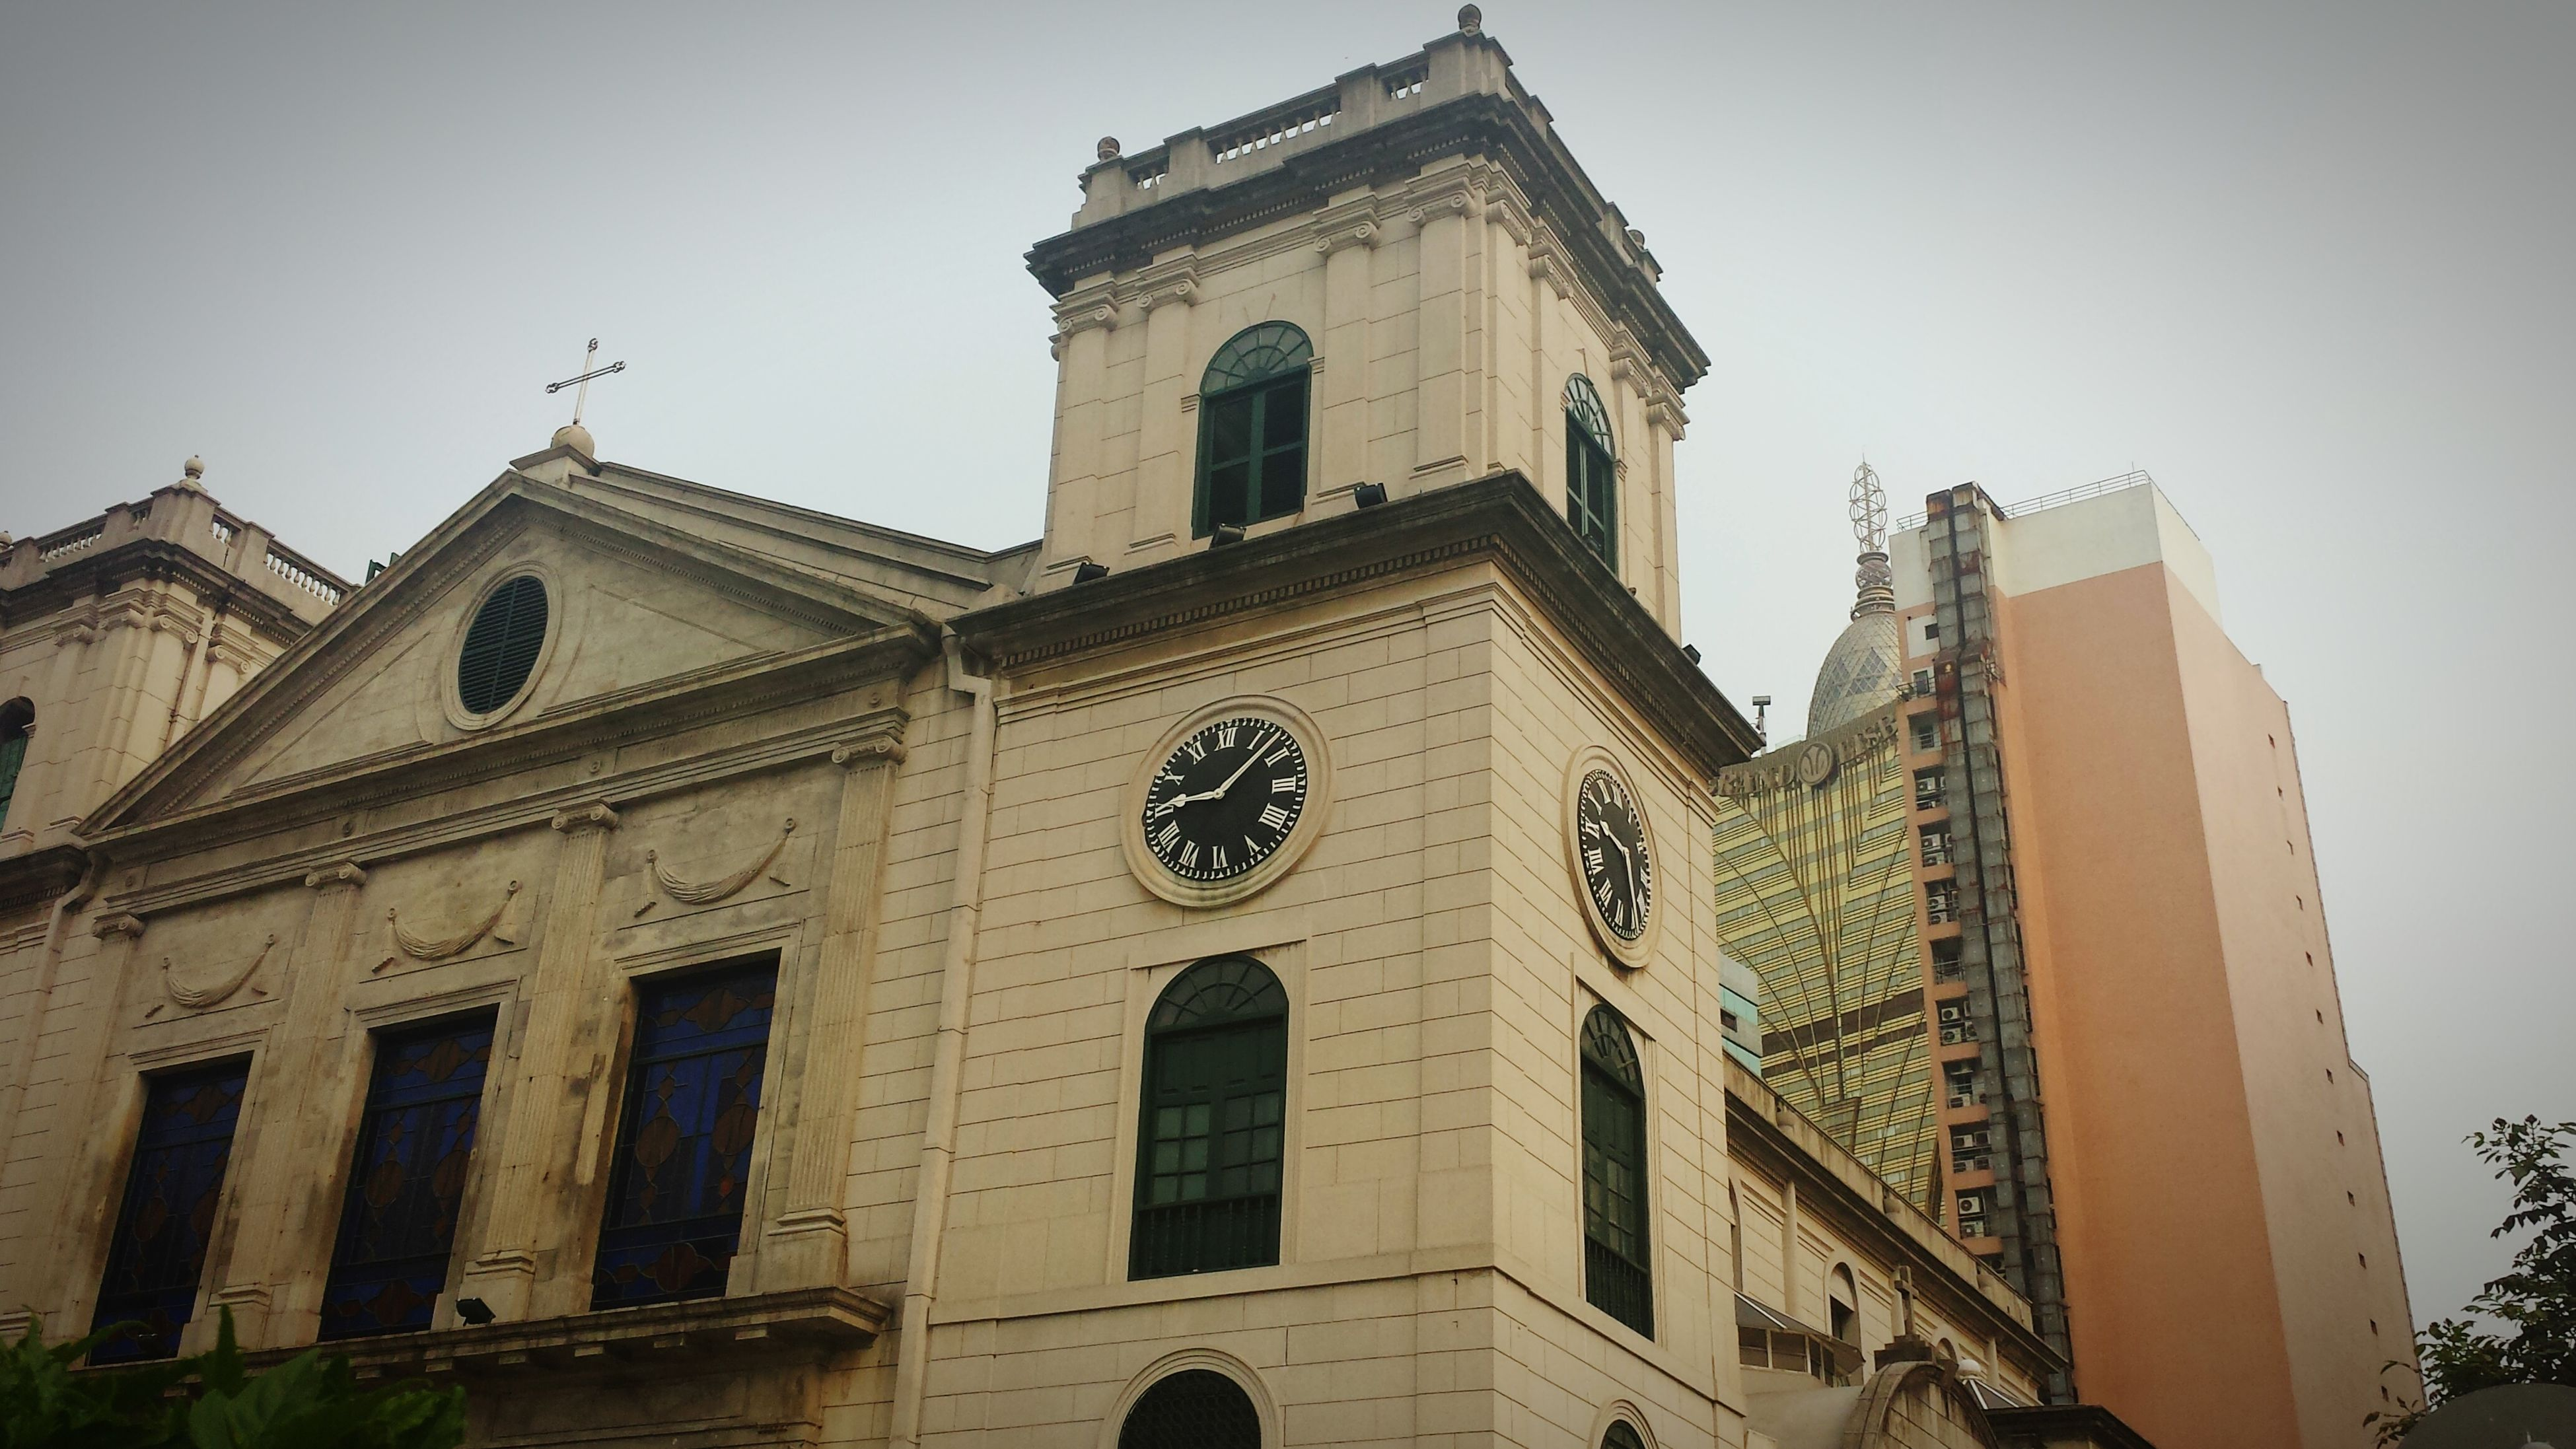 architecture, building exterior, built structure, low angle view, church, clear sky, window, religion, place of worship, sky, clock tower, tower, high section, spirituality, history, facade, day, clock